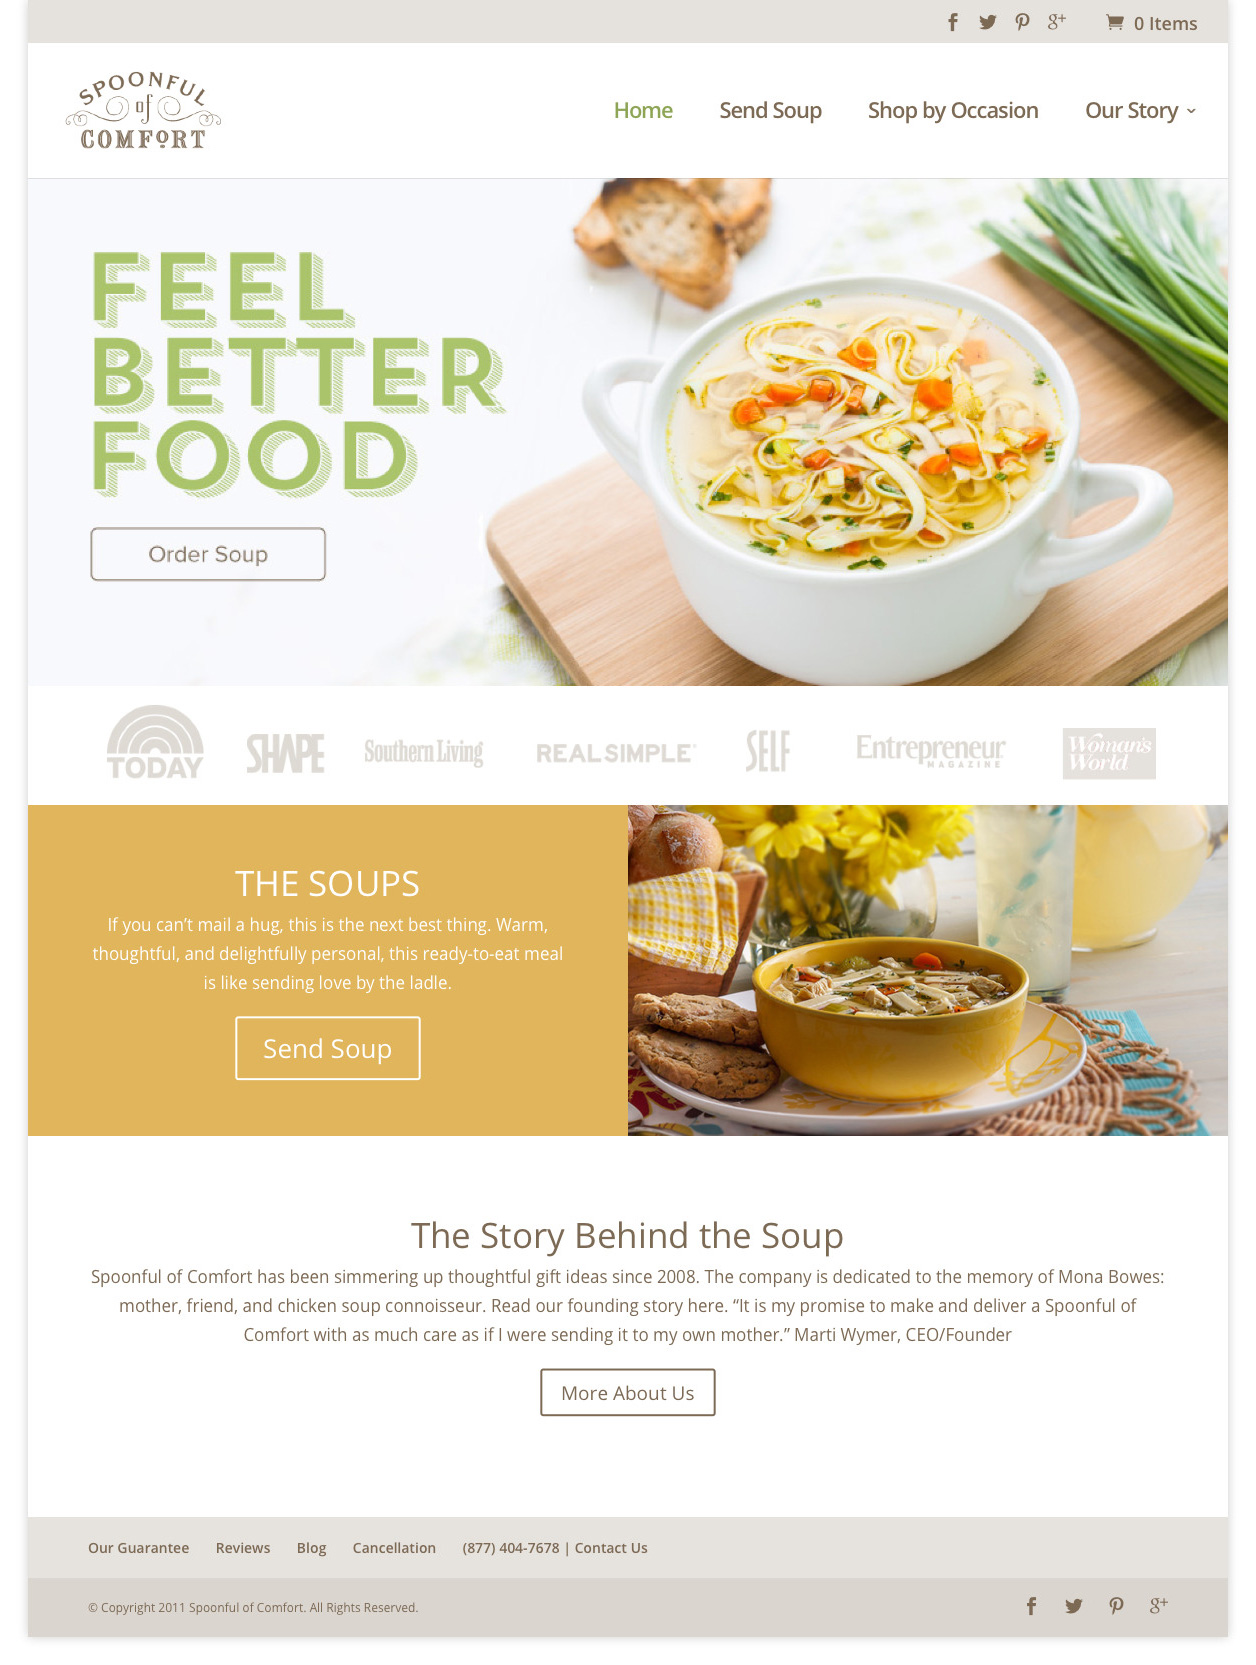 Home page design after